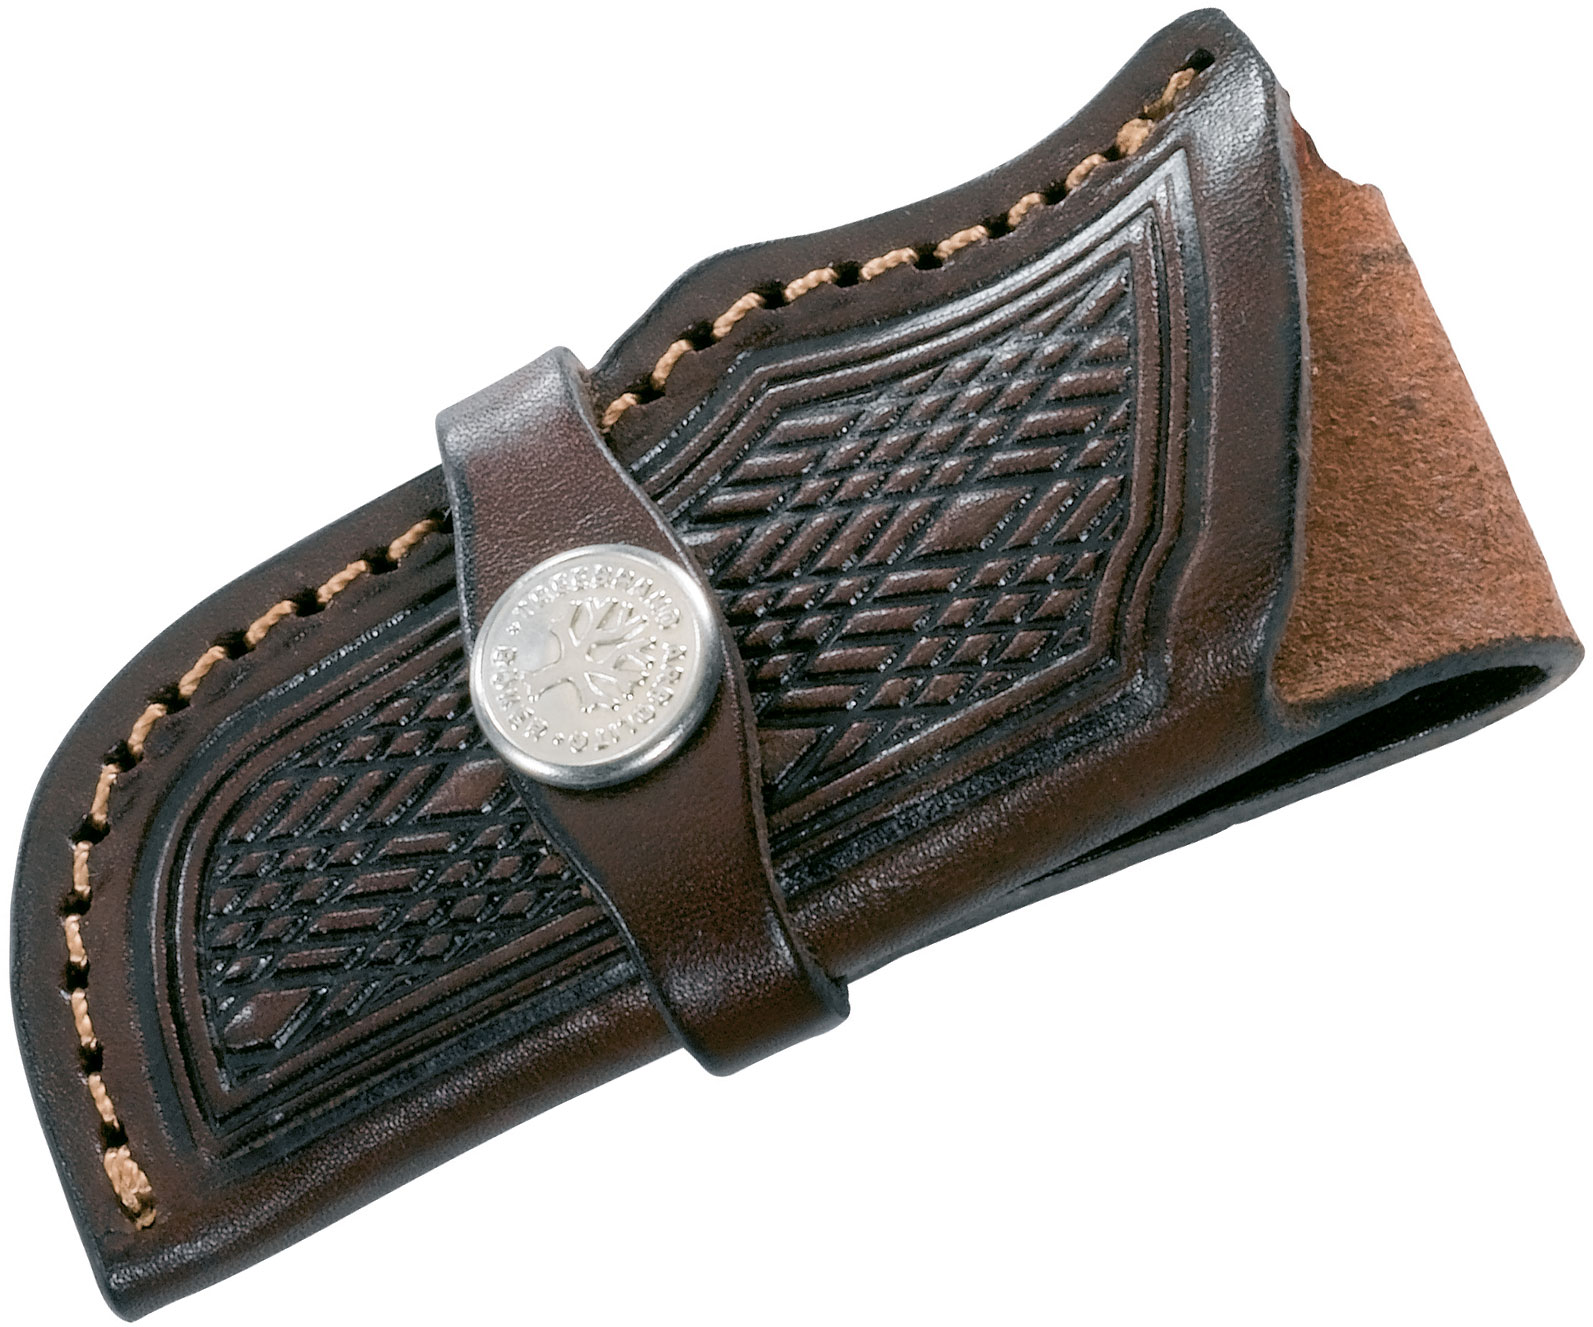 Boker Genuine Leather Sheath for Trappers or Stockmans